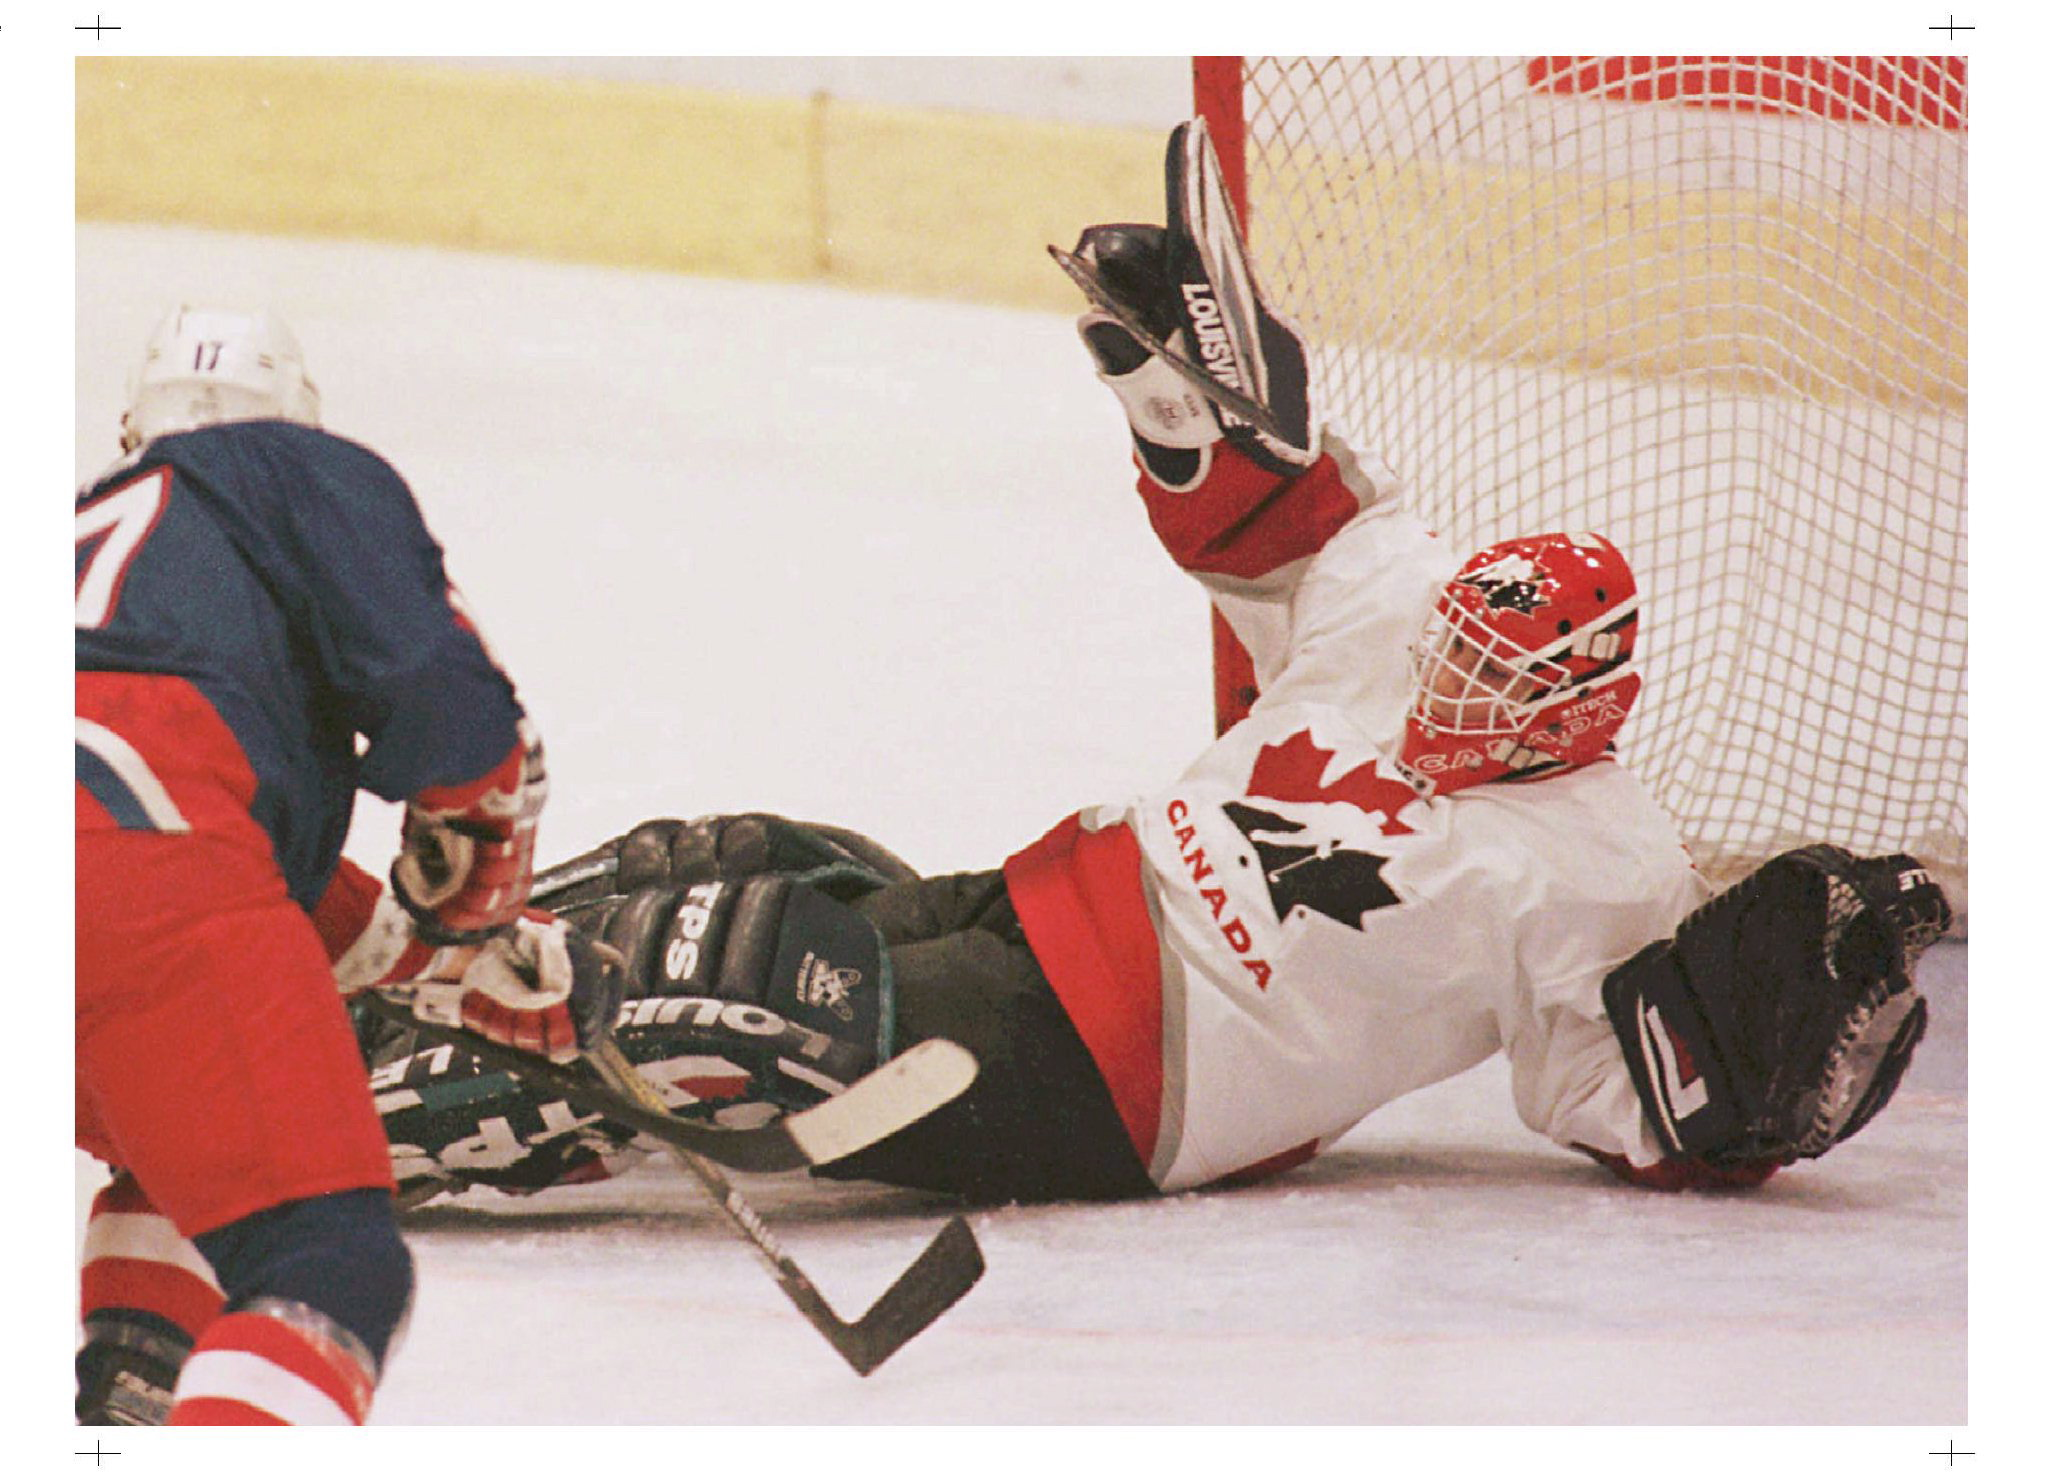 Team Canada goaltender Marc Denis makes the save off USA's Joseph Corvo during first period action at the World Junior Hockey Championships in Geneva Saturday. Canada beat the U.S. 2-0 to win their fifth consecutive title.(CP PHOTO/Ryan Remiorz)